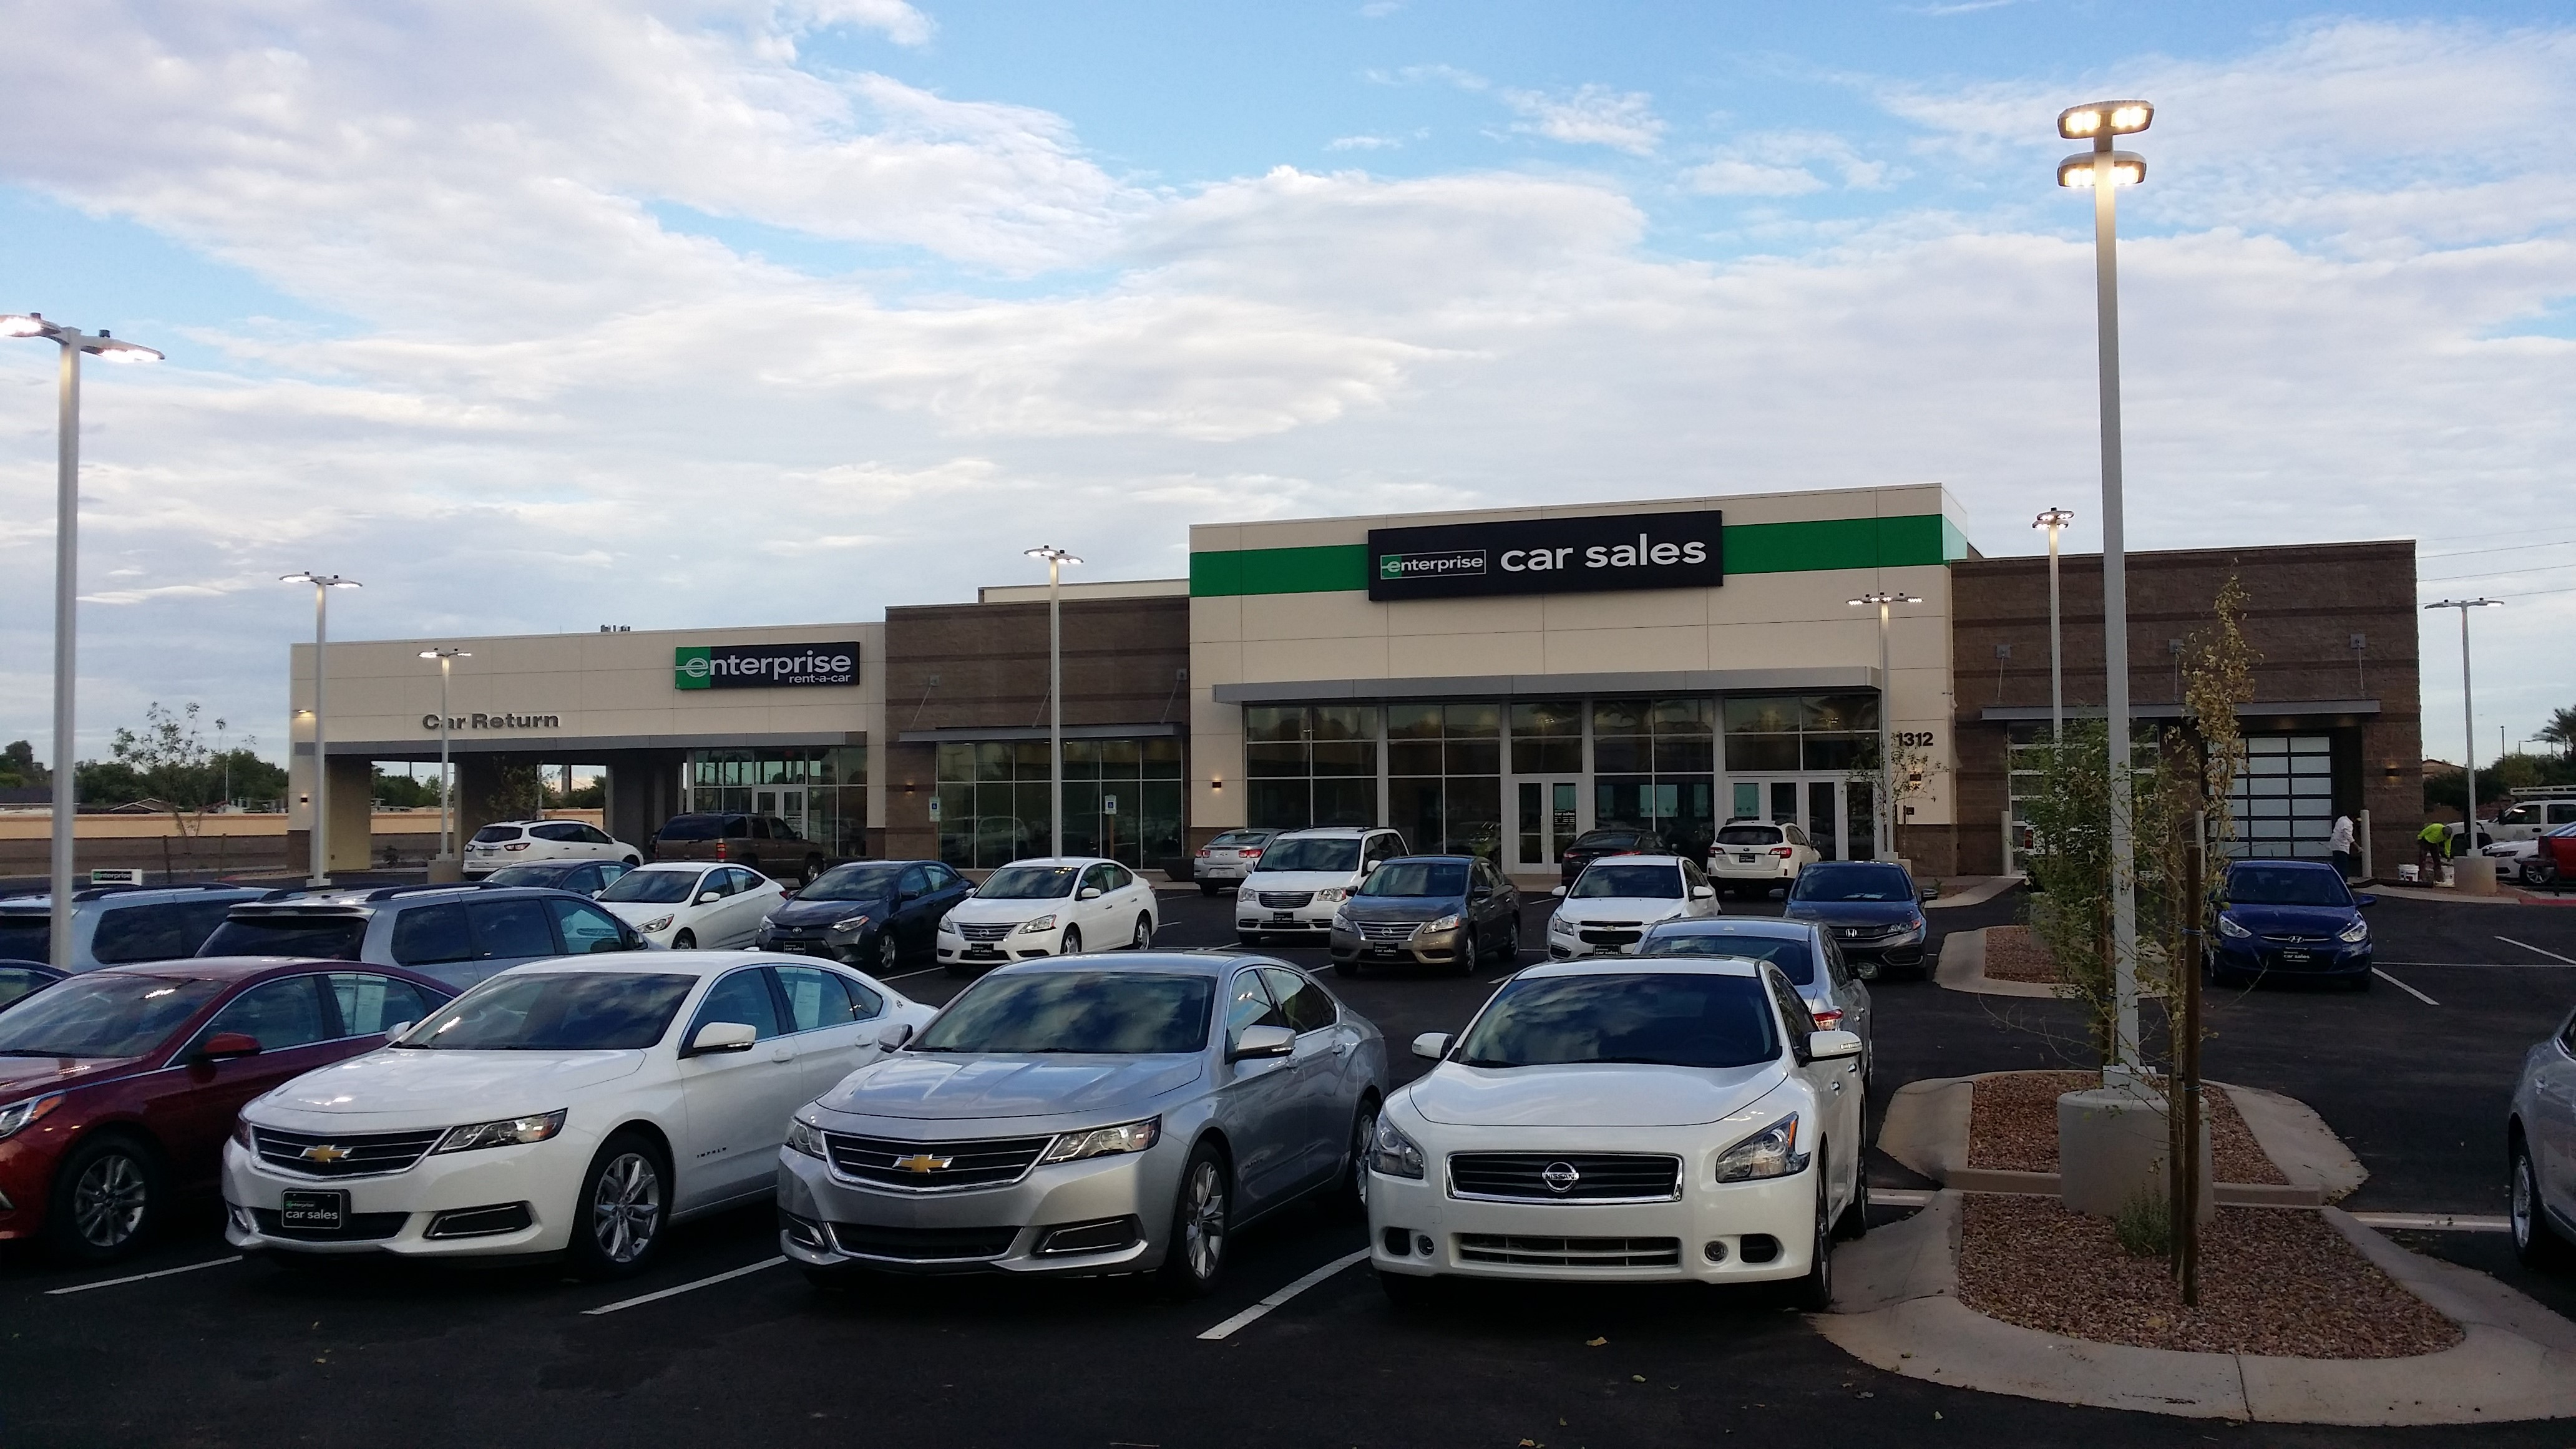 Cheap Cars for Sale Dealership Fresh Enterprise Car Sales Expanding Nationwide Two New Locations In